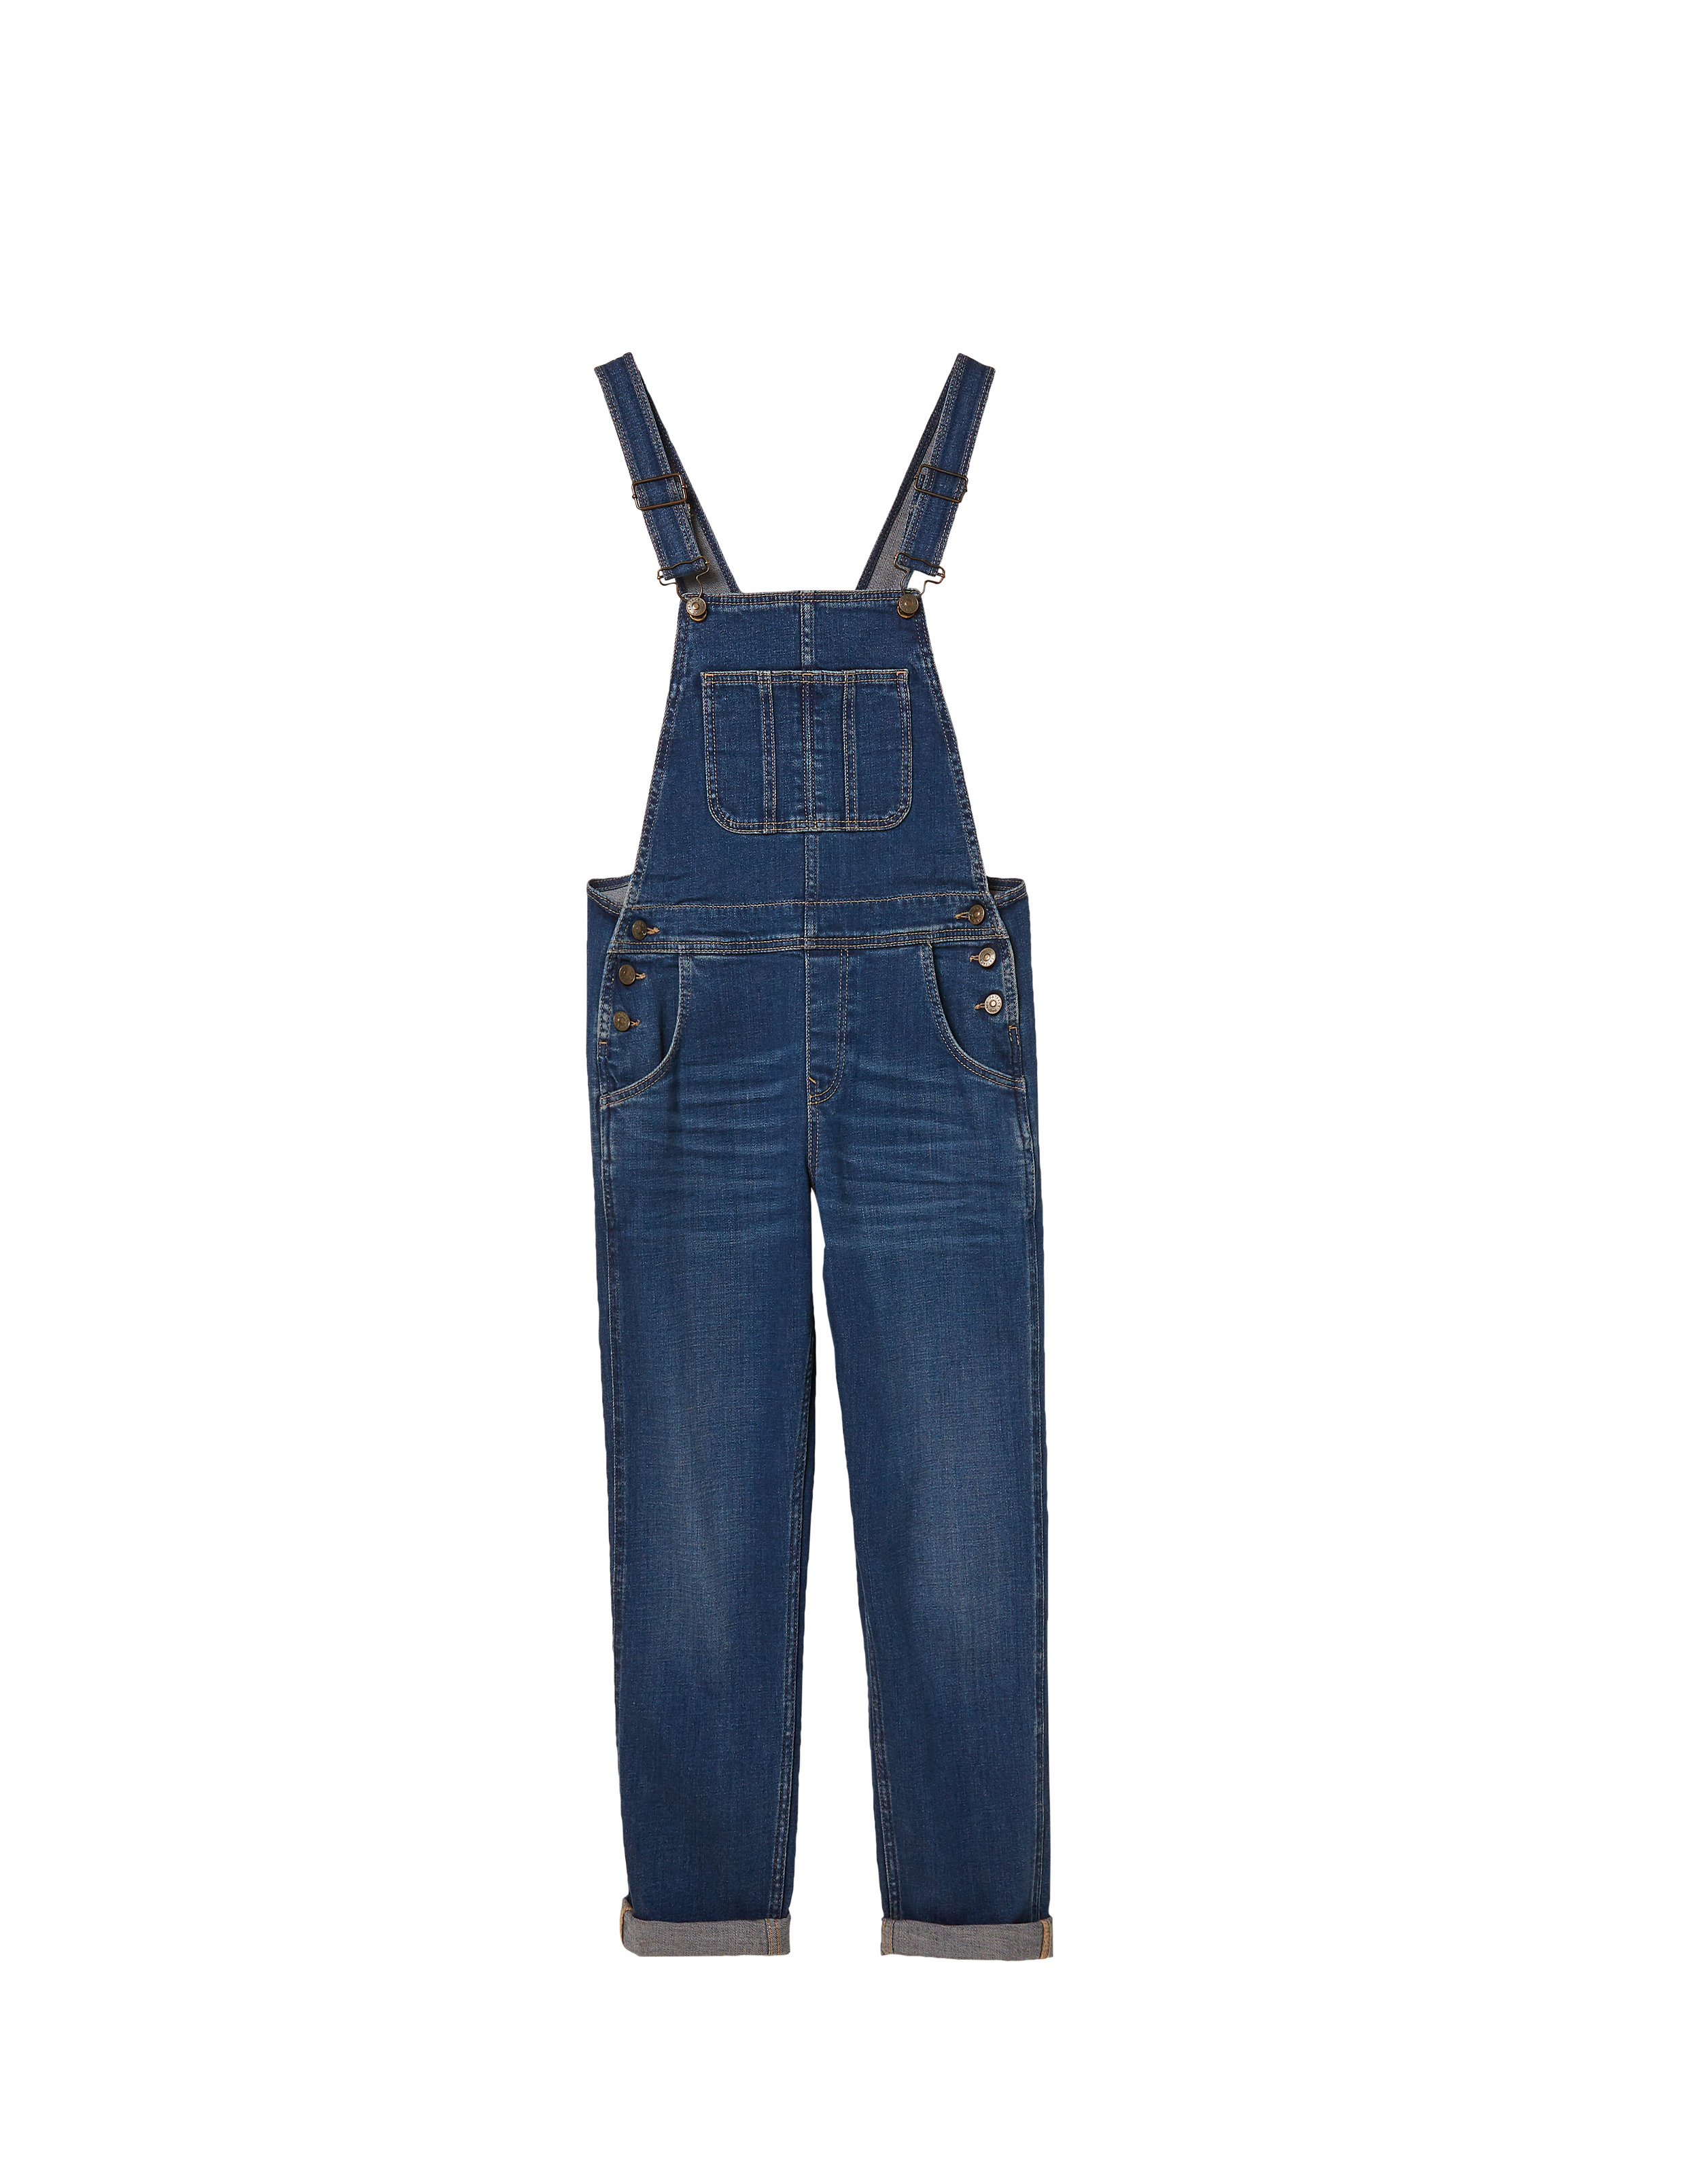 FatFace Lewes Dungarees in Blue Wash 946764 £59.50 www.fatface.com.jpg